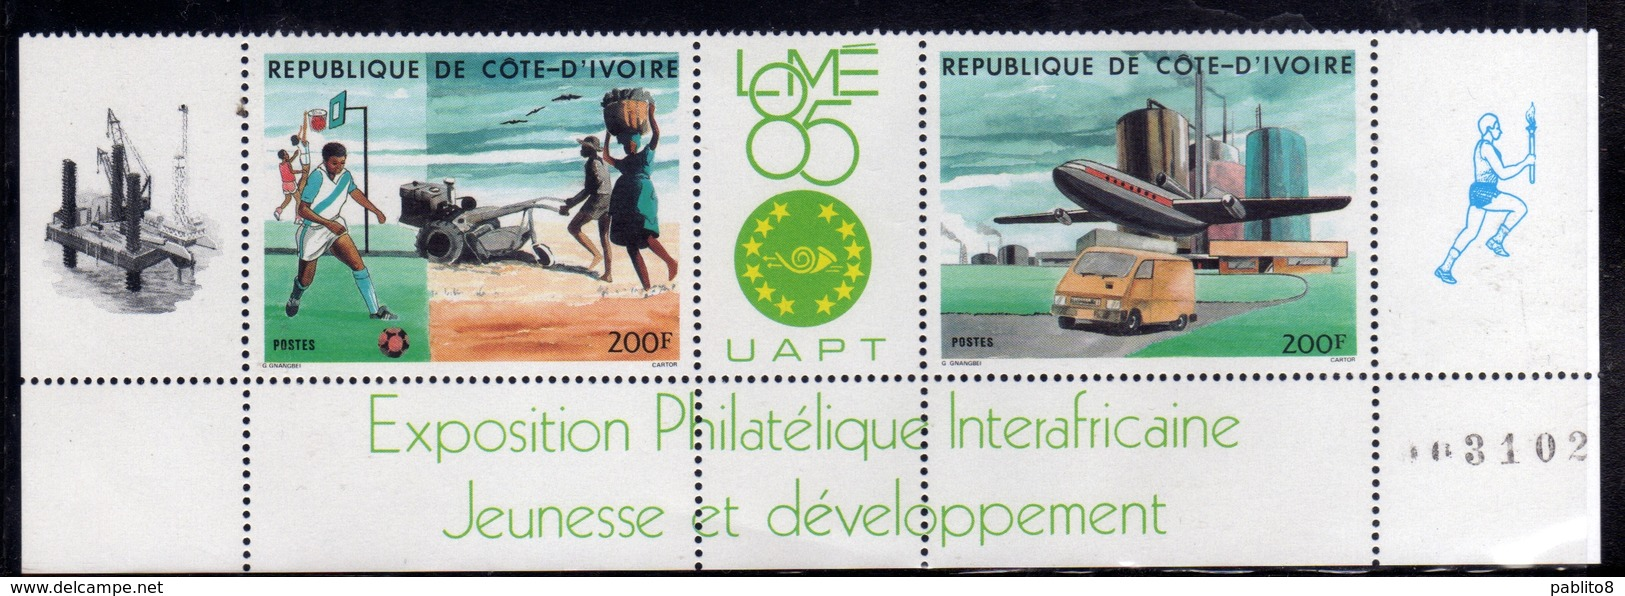 IVORY COAST COSTA D'AVORIO COTE D'IVOIRE 19885 PHILEXAFRICA 85 STRIP WITH LABELS MNH - Costa D'Avorio (1960-...)